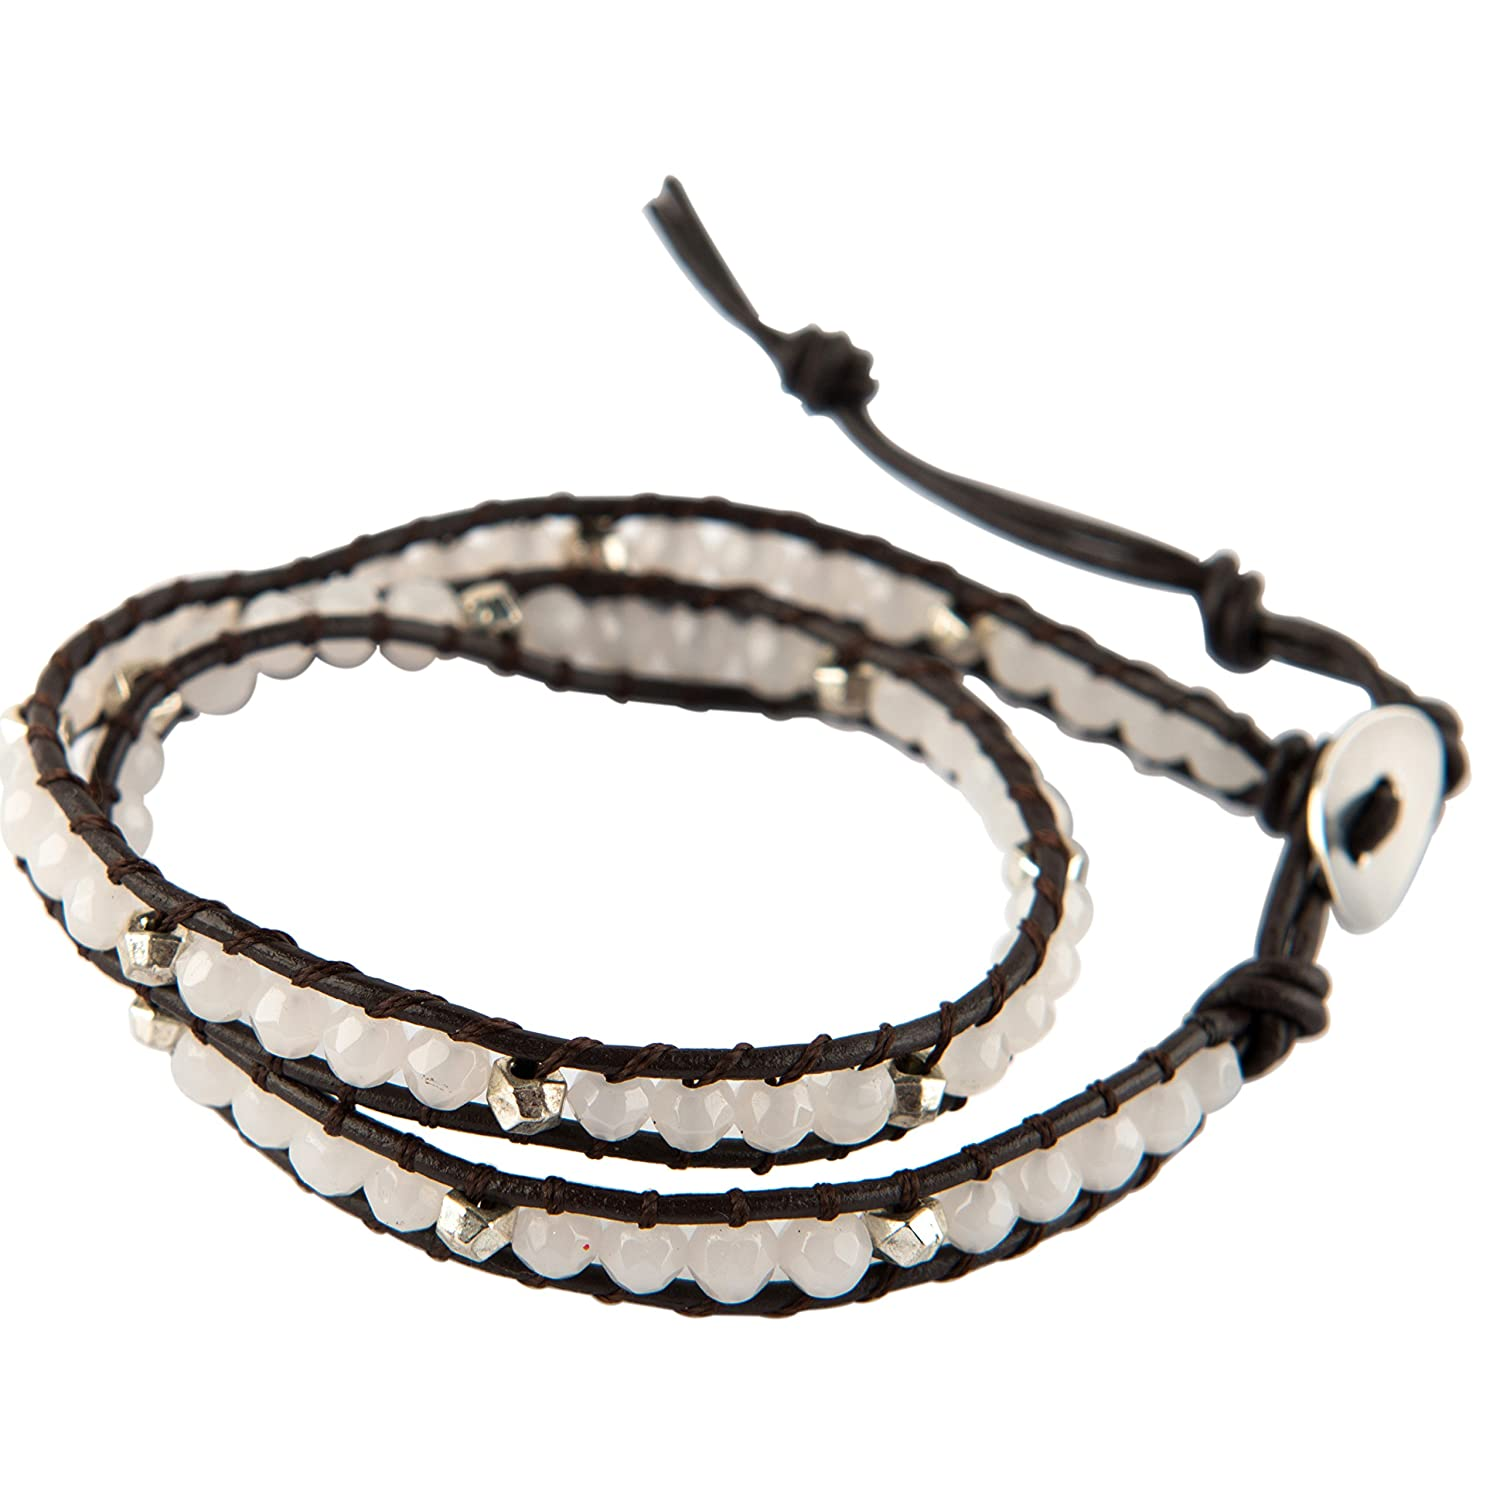 Vexed Soul Handmade Wrap Bracelet with Supple Brown Leather and Beautiful Jade and Plated Crystal Beads VS-NH-84